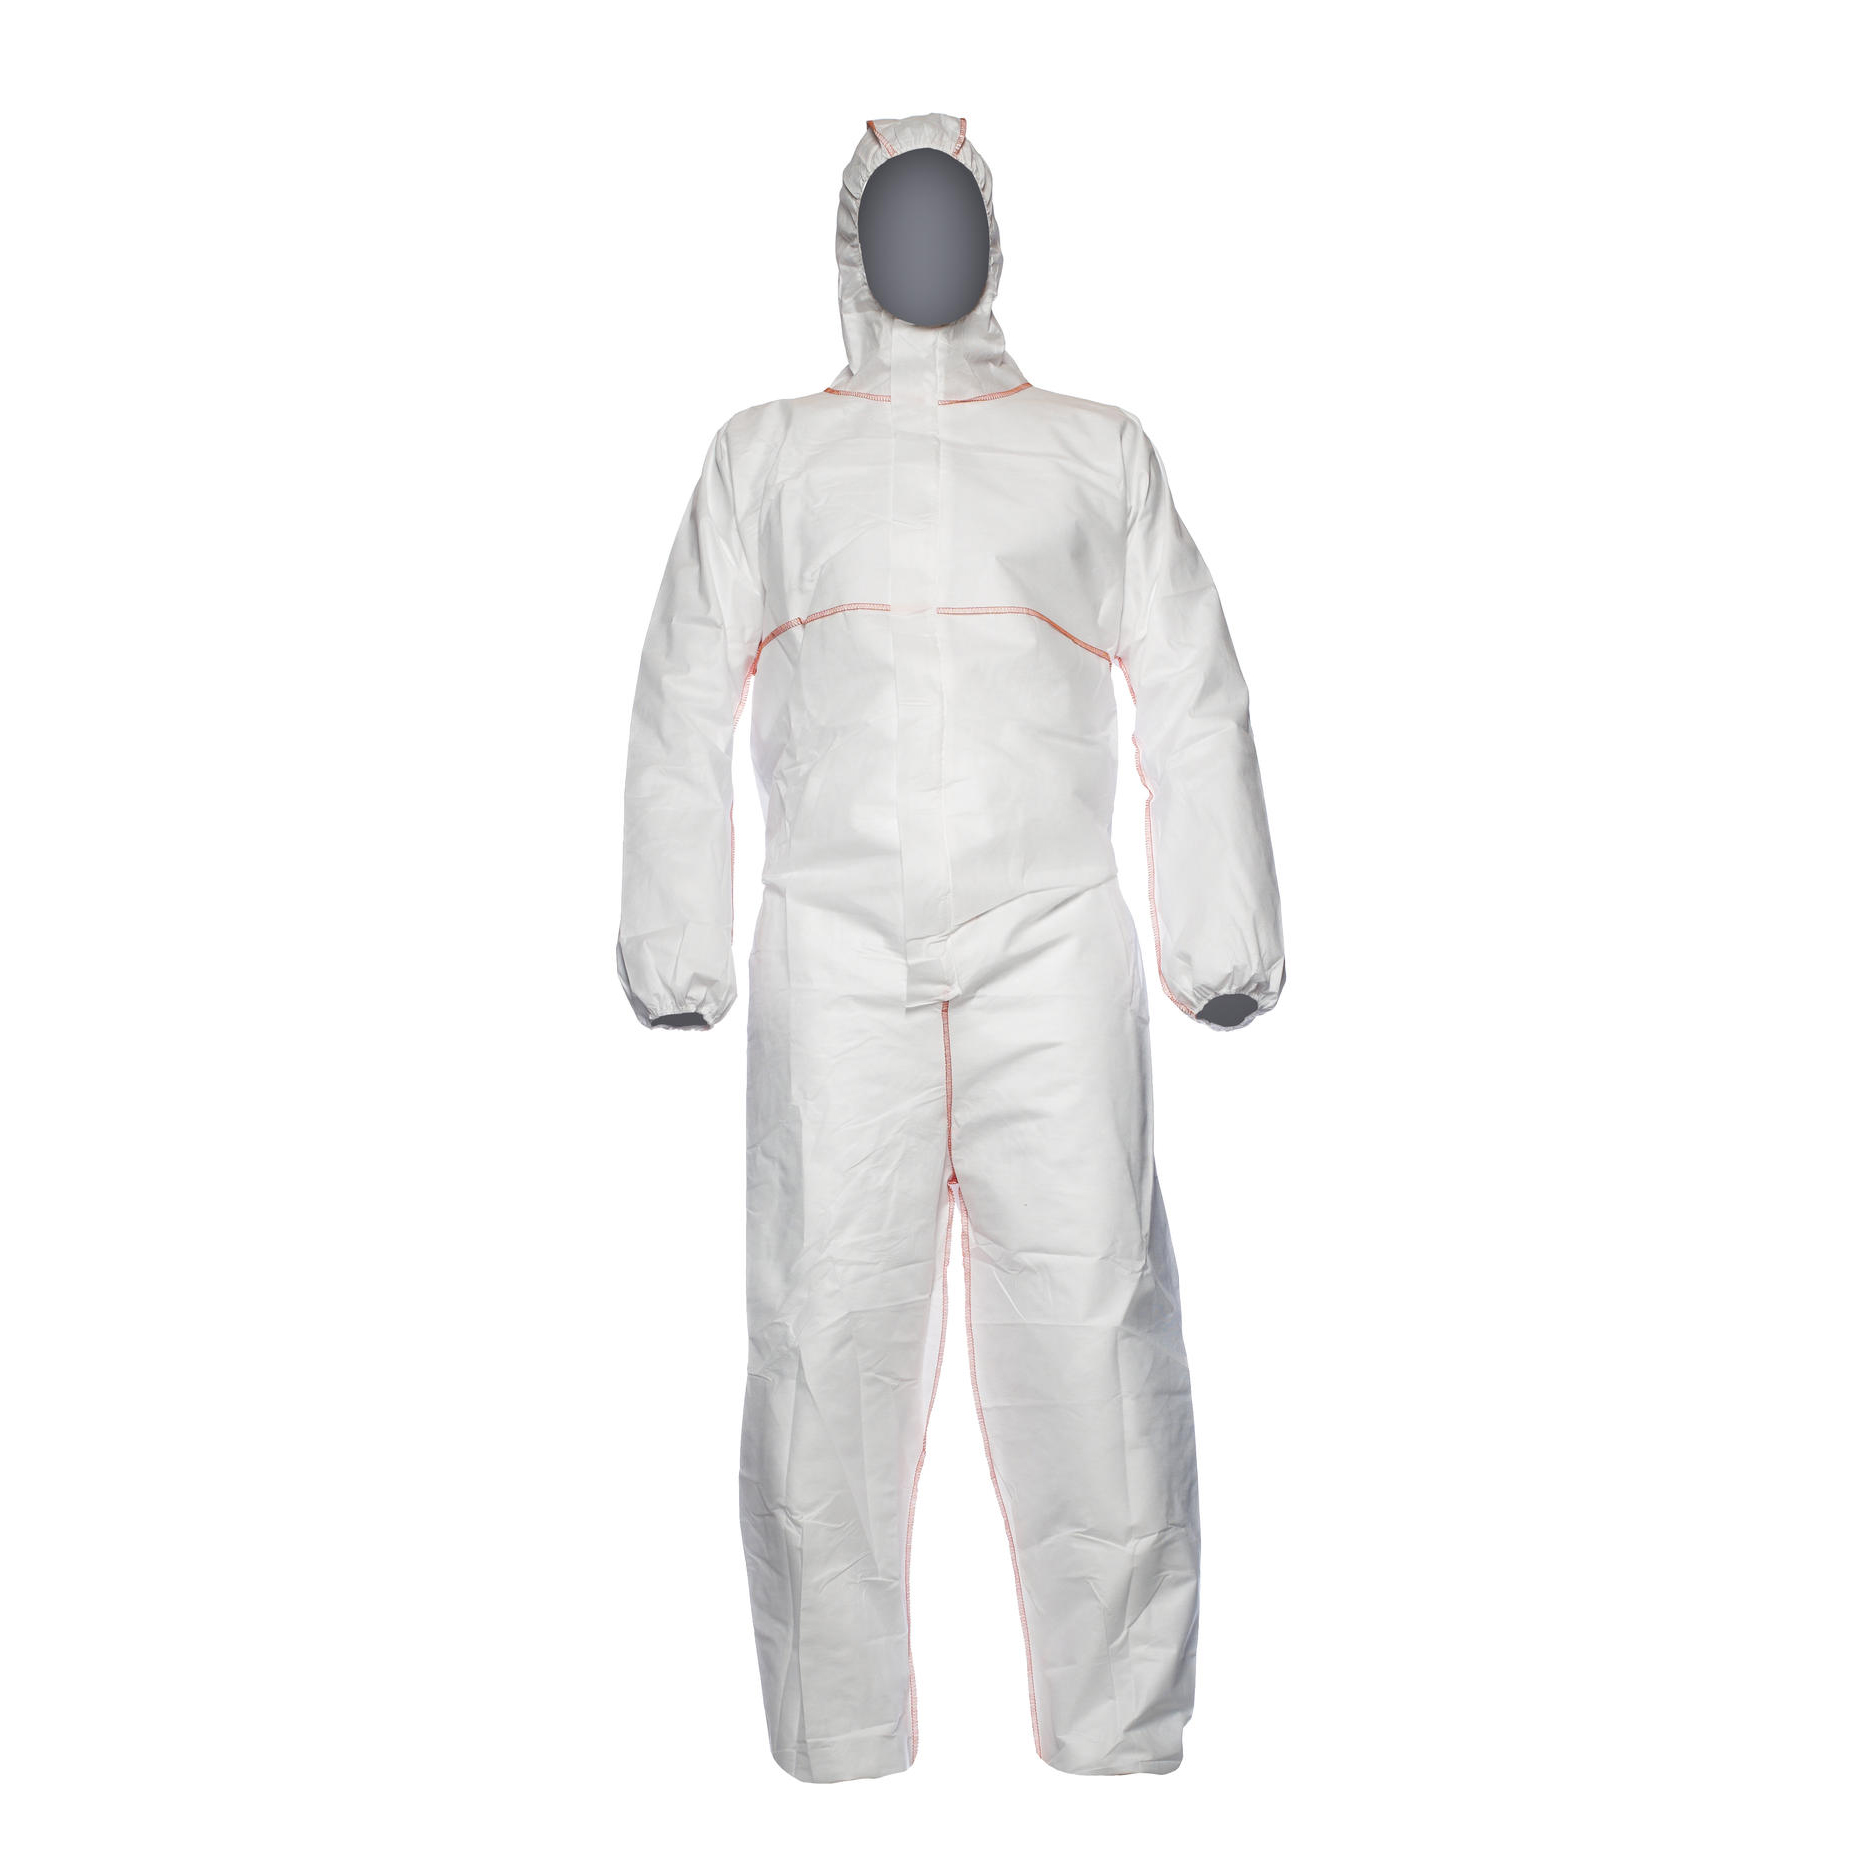 Protective coveralls Proshield Fire Resistant Coveralls White 2XL Ref PROFRXXL *Up to 3 Day Leadtime*